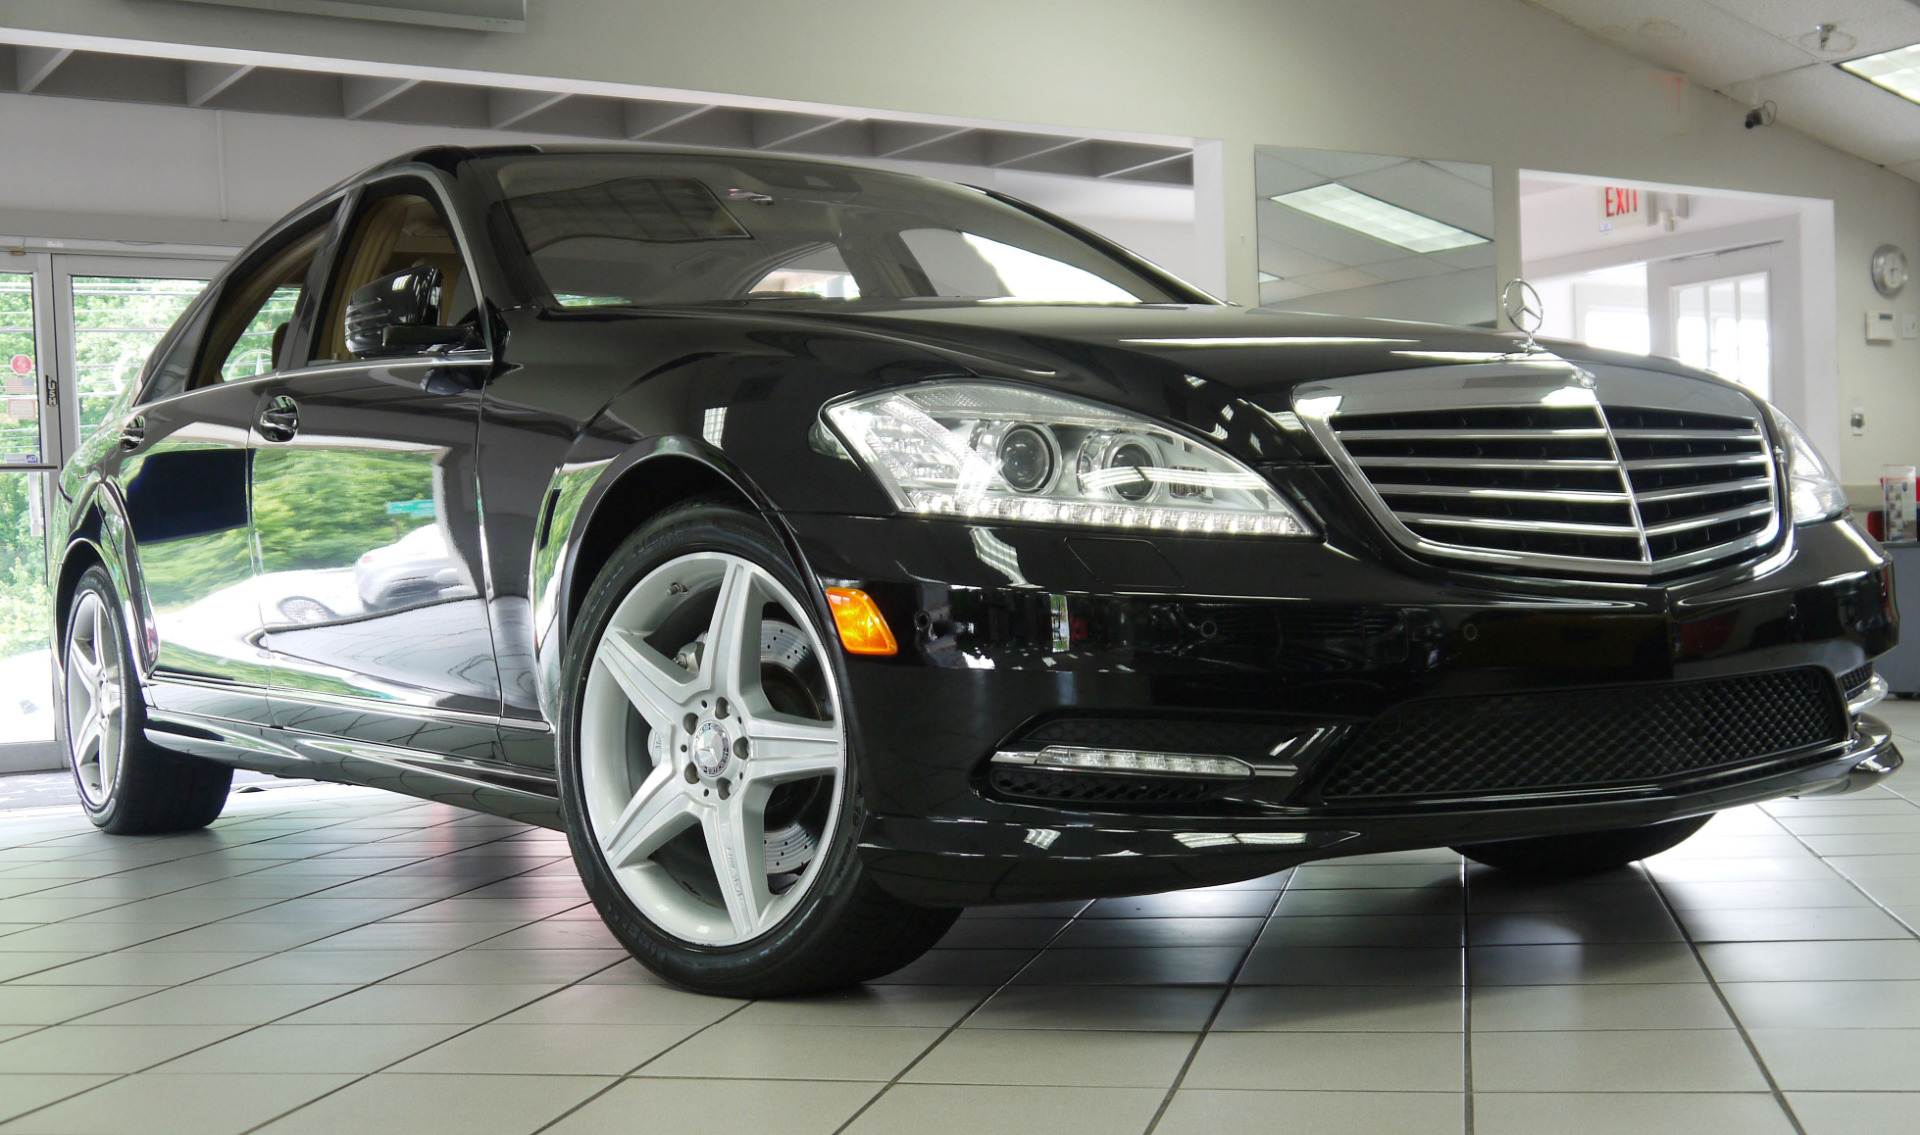 Used 2010 mercedes benz s class s550 marietta ga for Used s class mercedes benz